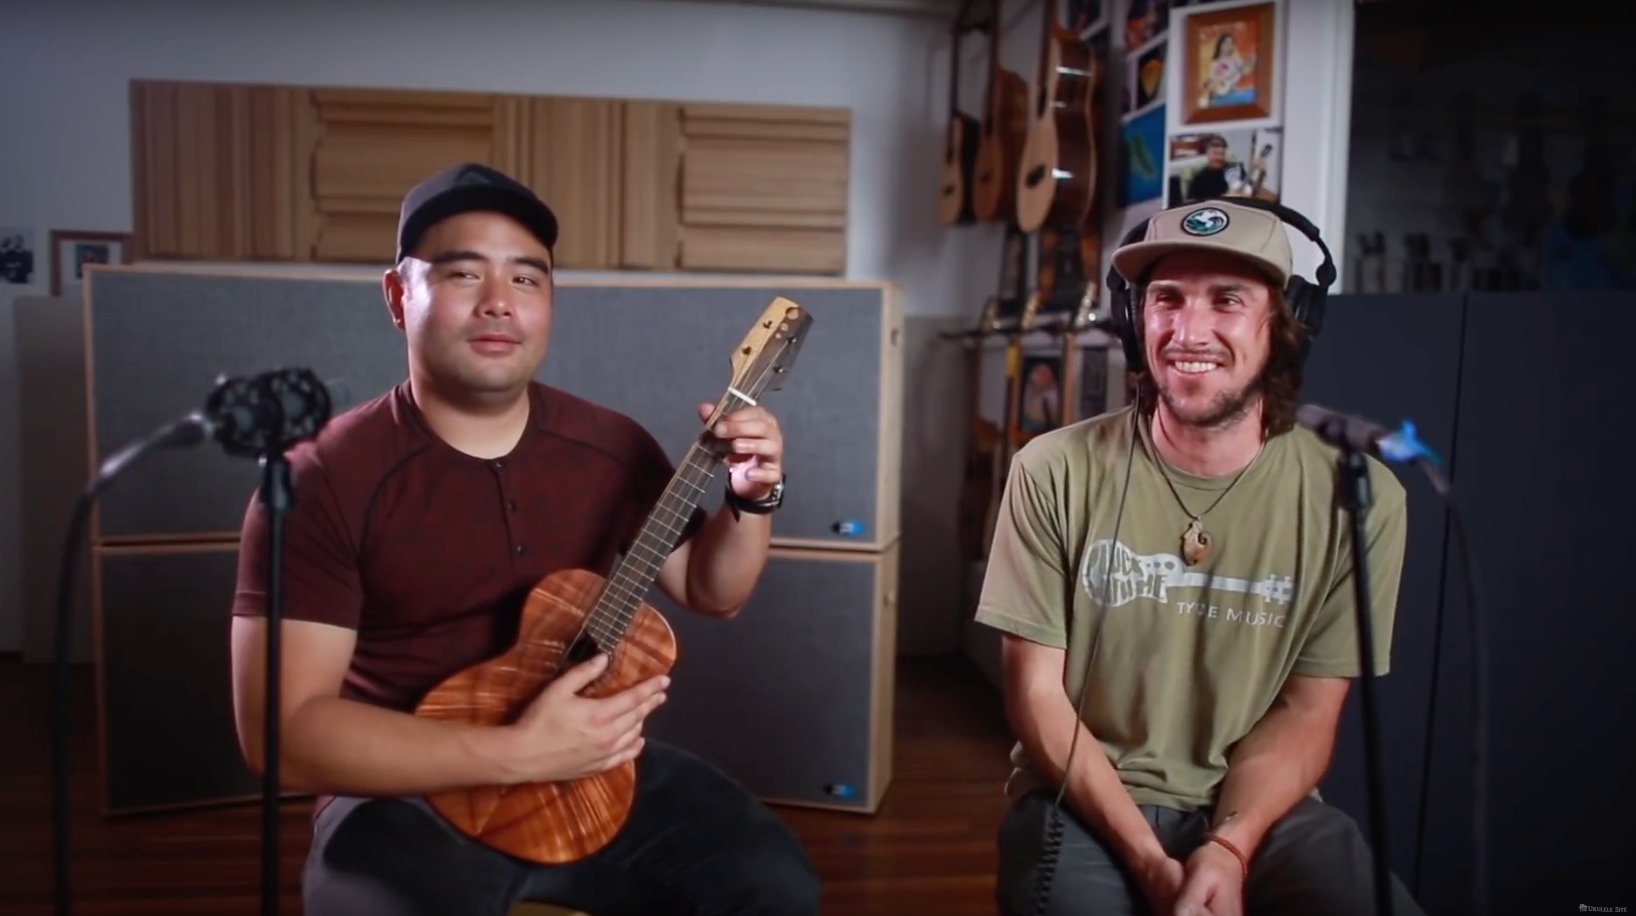 The Ukulele Review 19.14 Tyler w TYDE MUSIC + Zoë & Tobias